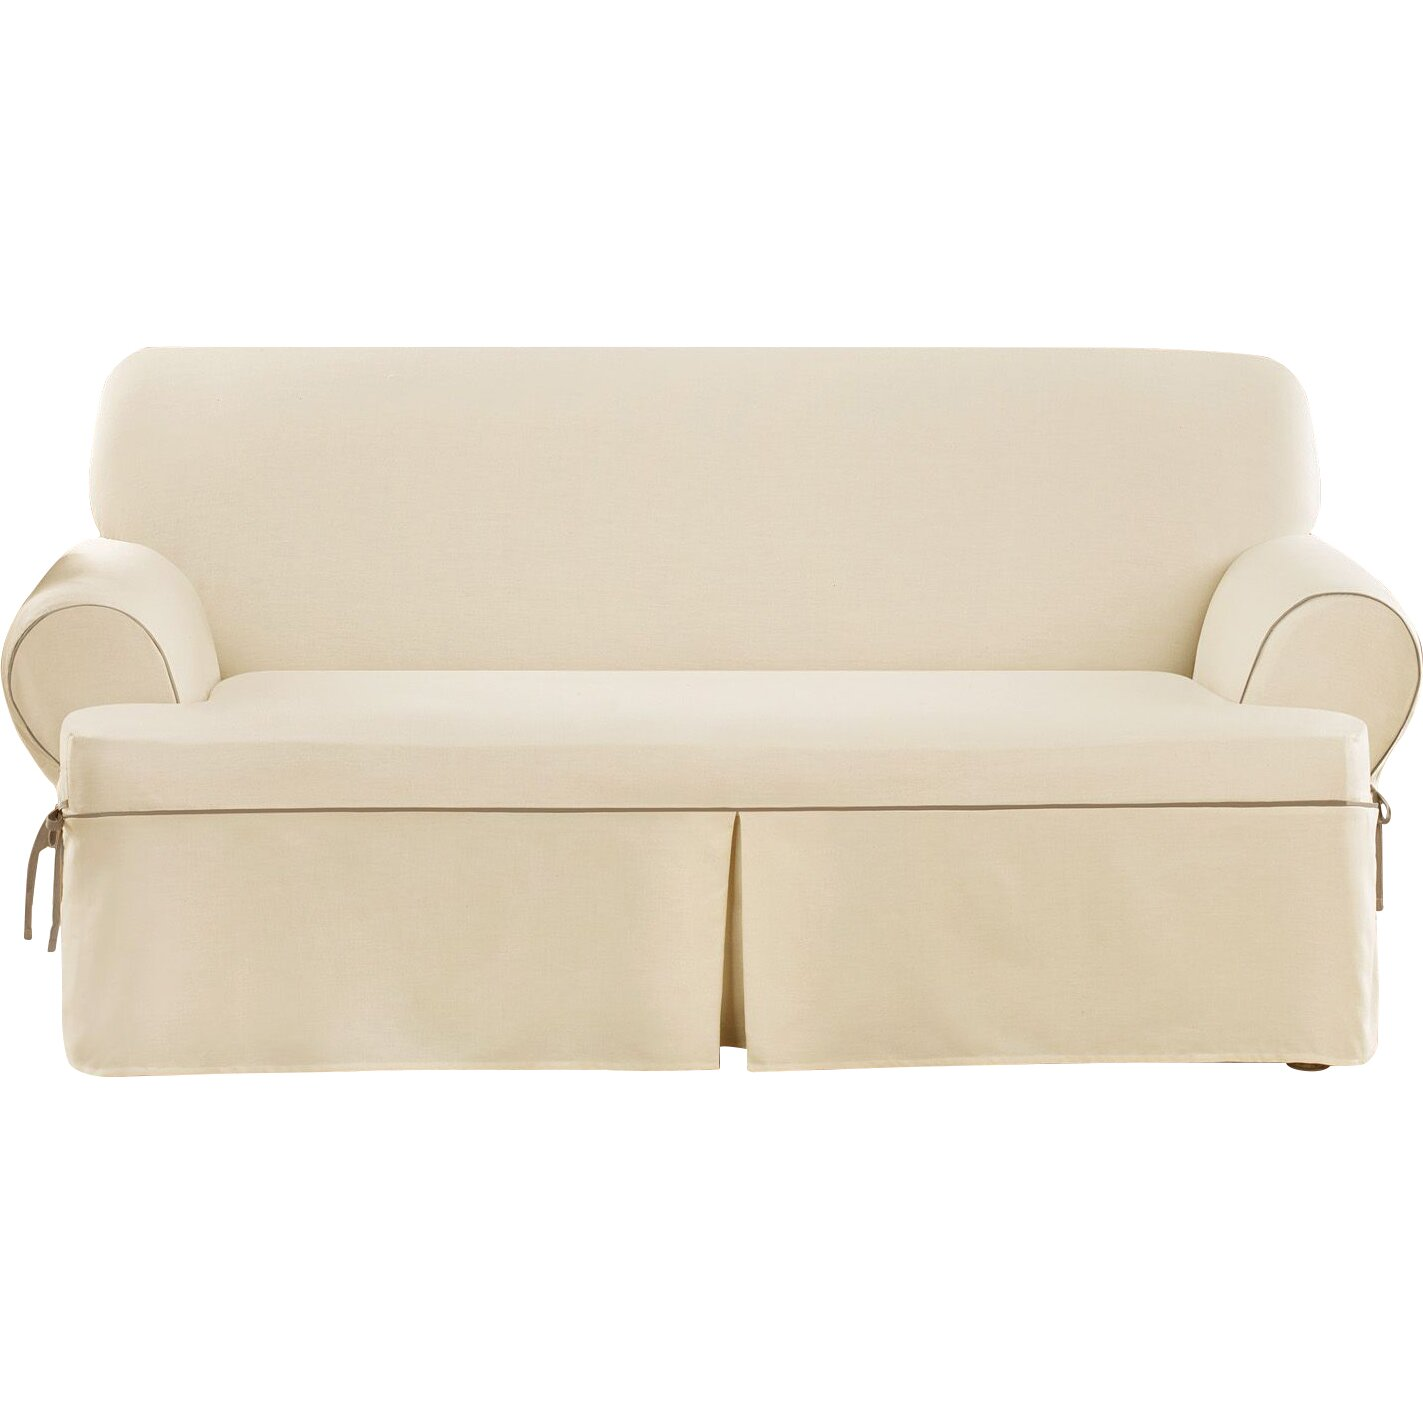 Sure Fit Cotton Duck Sofa T Cushion Slipcover amp Reviews  : Cotton Duck Sofa T Cushion Slipcover from www.wayfair.ca size 1423 x 1423 jpeg 129kB